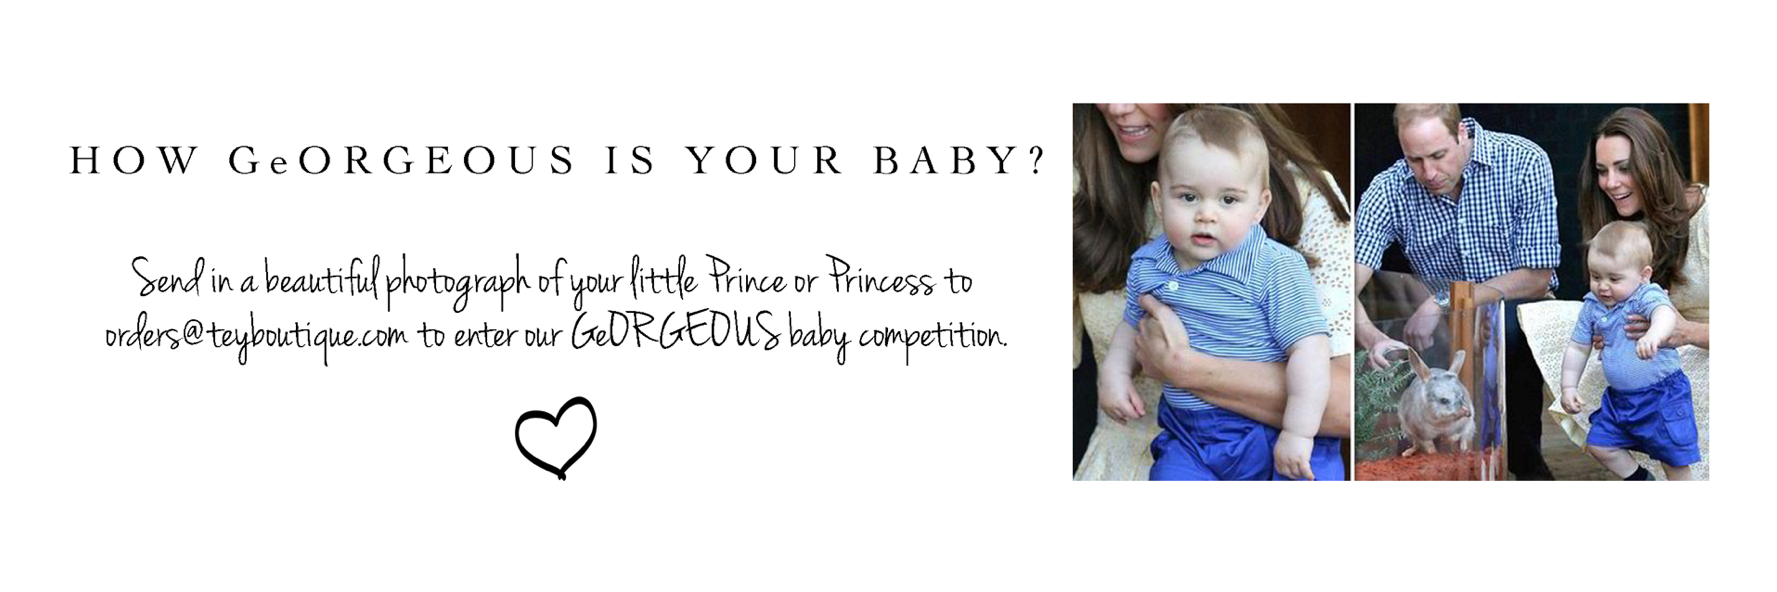 Prince George 1st Birthday | WIN 1st Birthday Gifts Competition